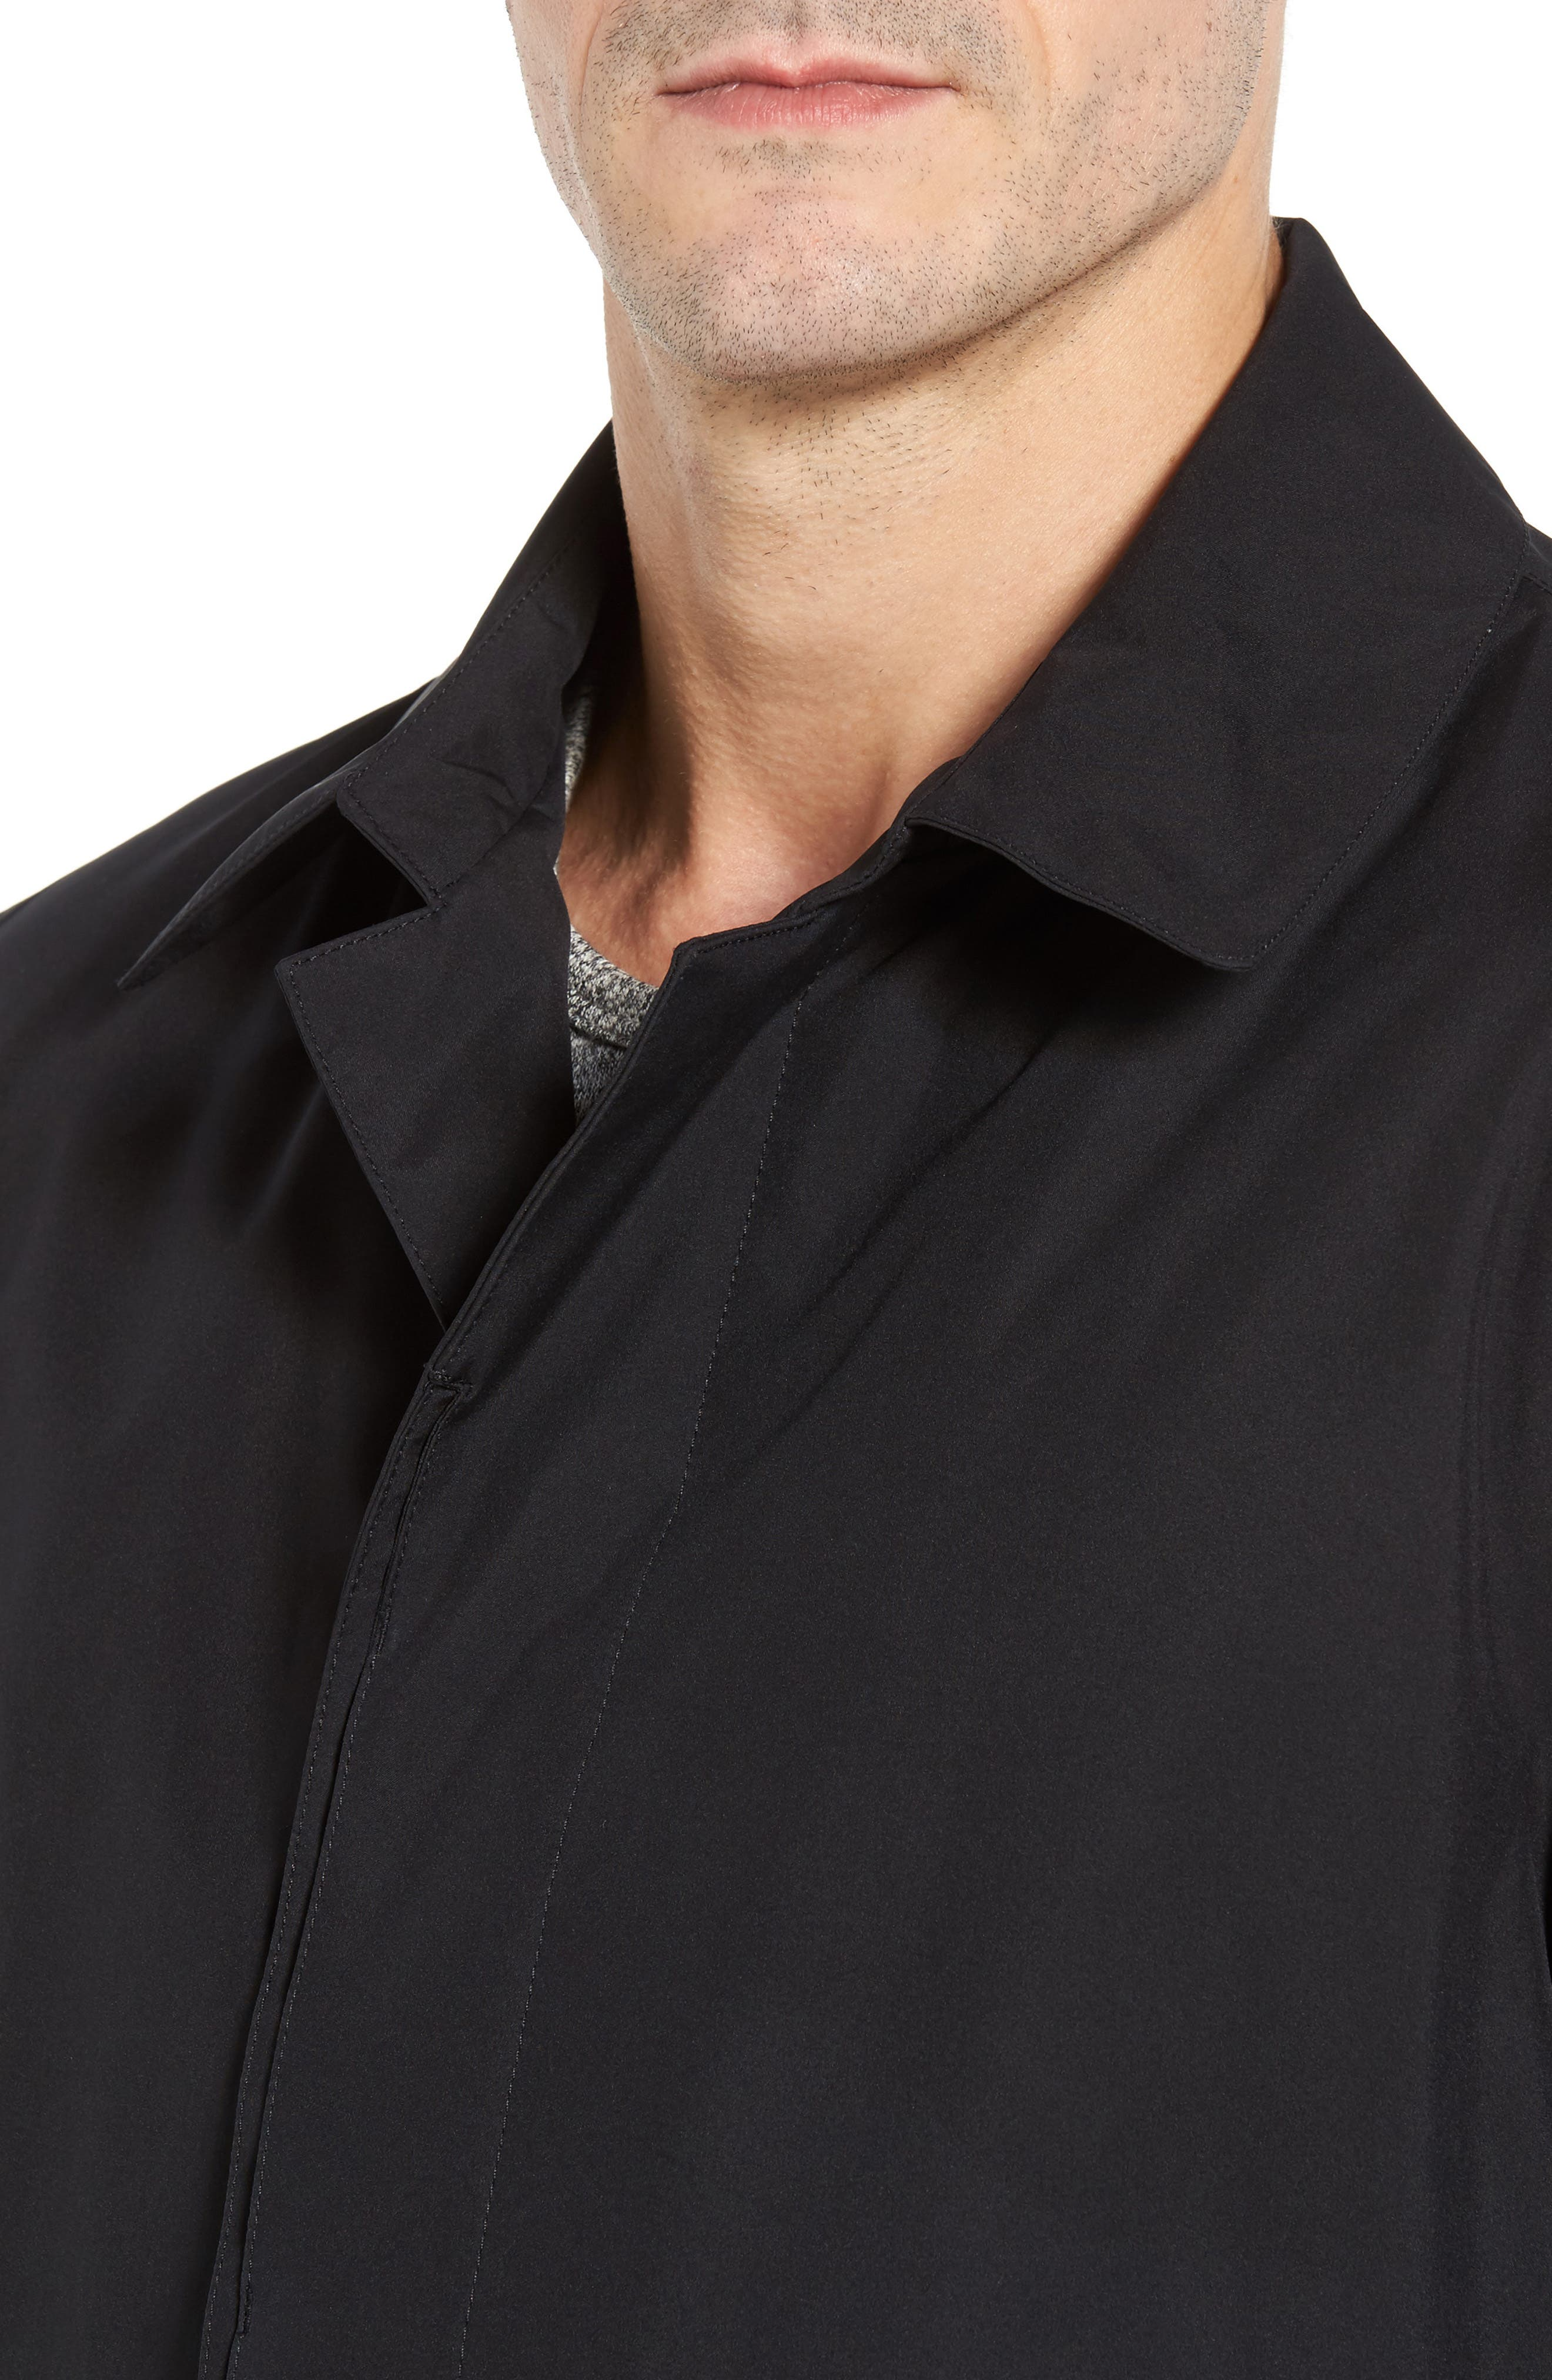 HERNO,                             Gore-Tex<sup>®</sup> 3-Layer Jacket,                             Alternate thumbnail 4, color,                             001